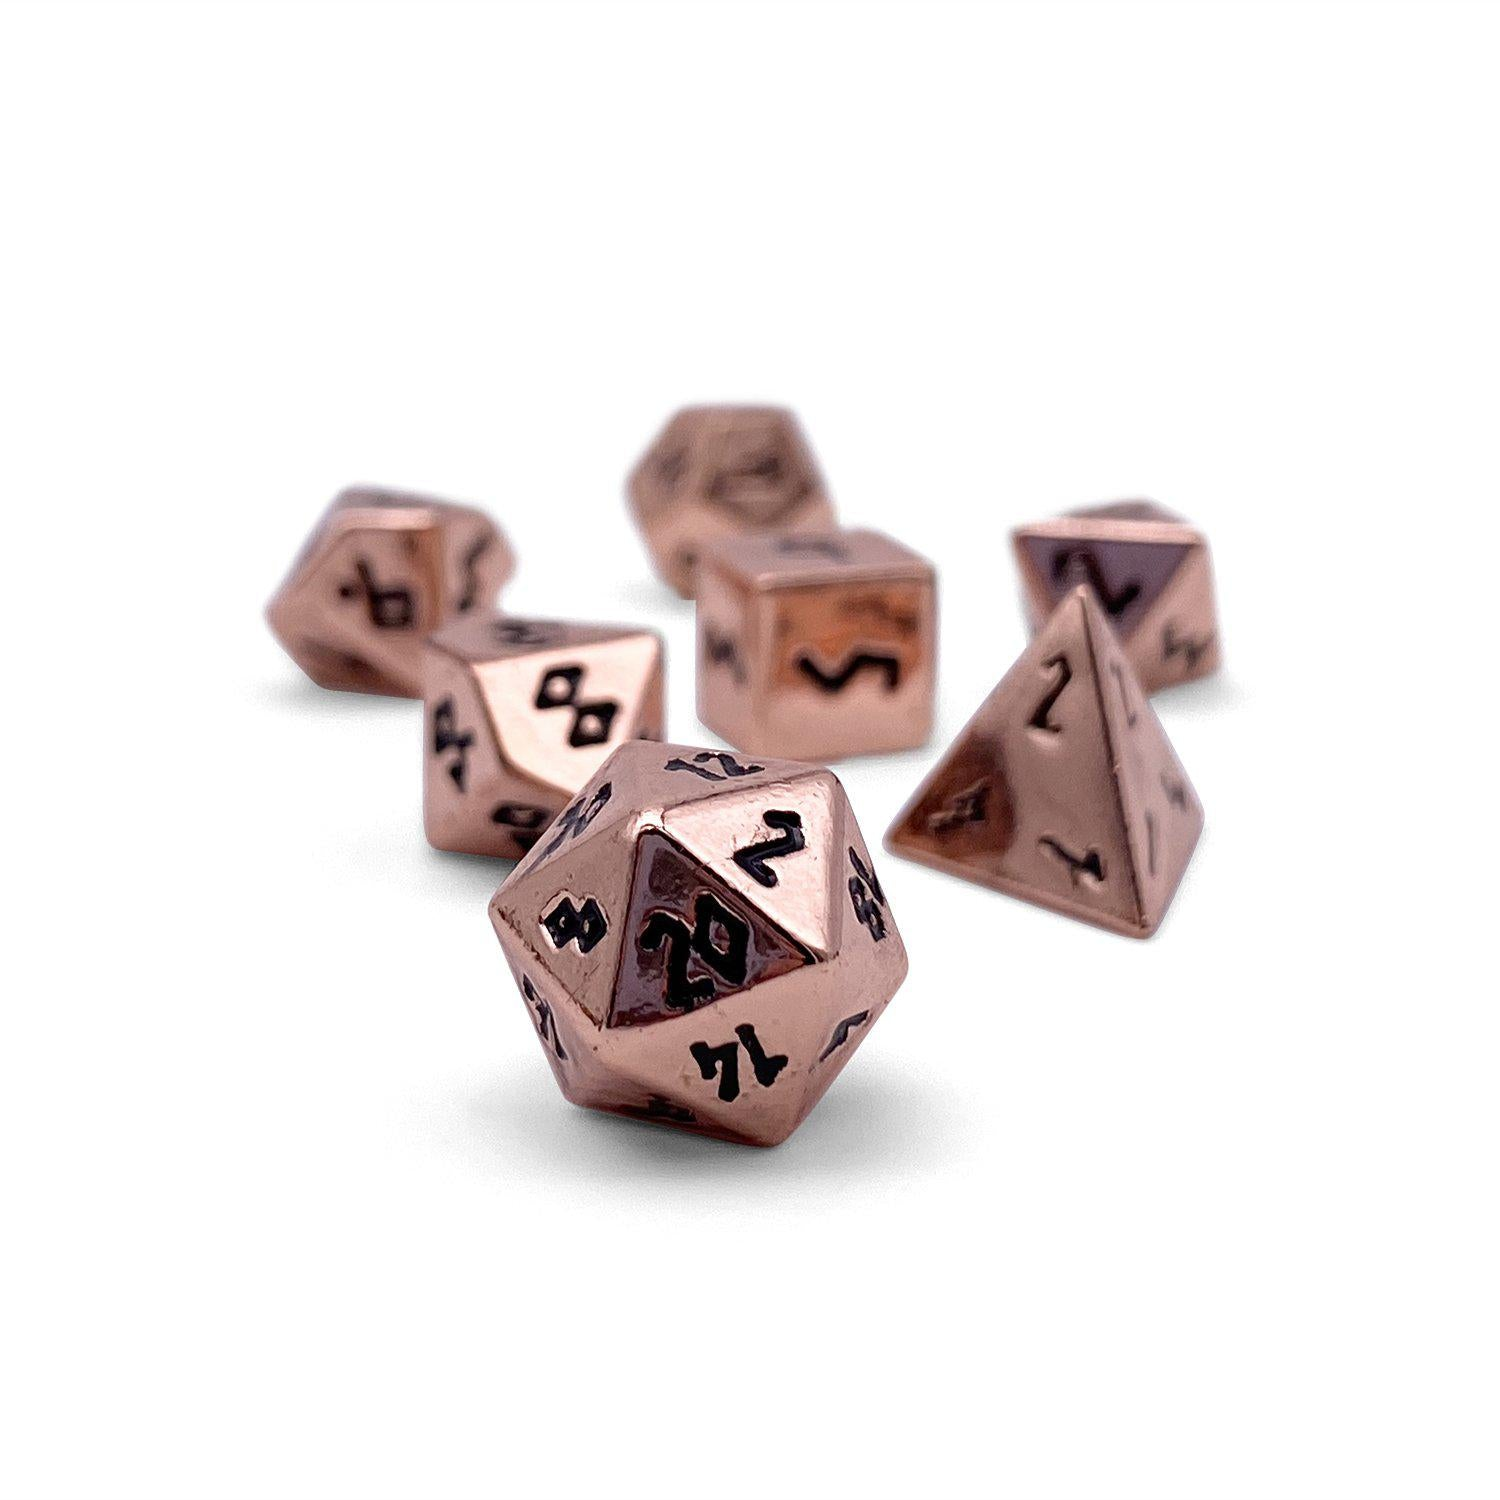 Copper Still Pebble ™ Dice - 10mm Alloy Mini Polyhedral Dice Set